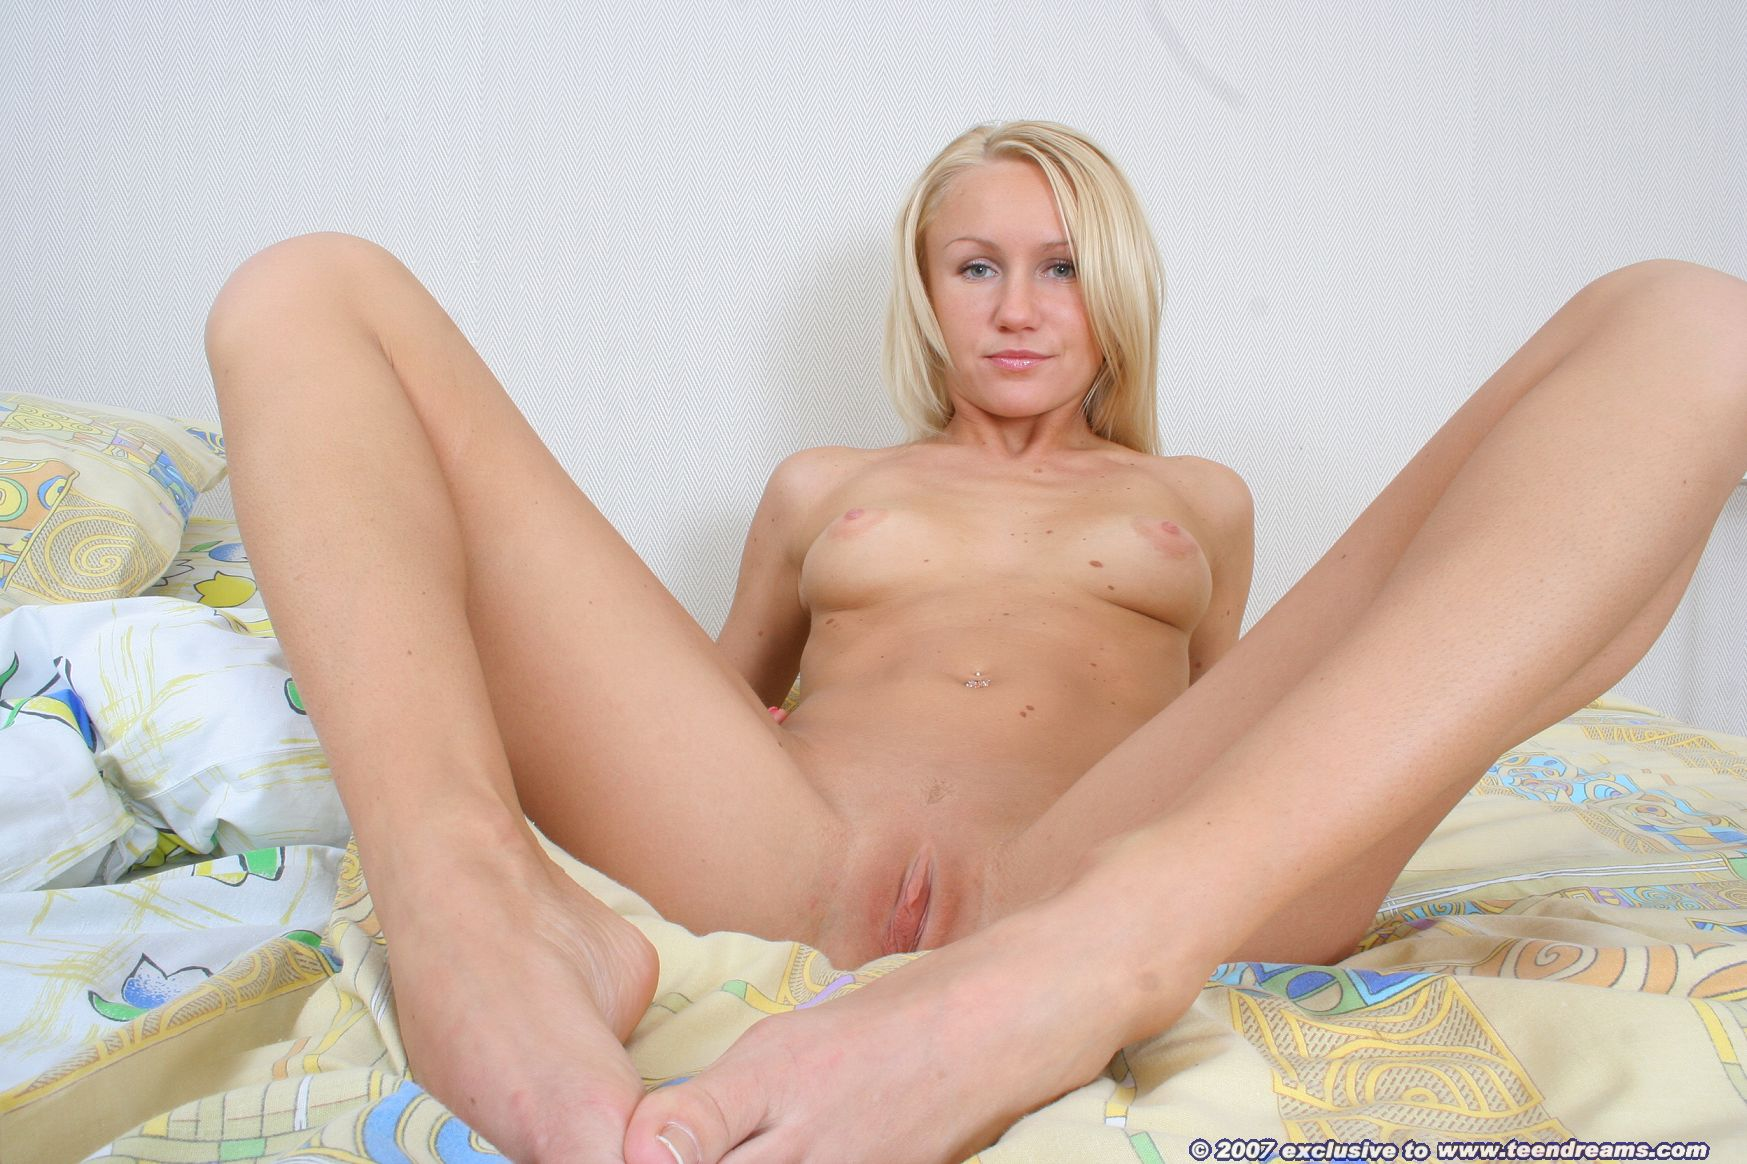 Hot blonde spreading her sweet pussy - Mobile Porn Movies